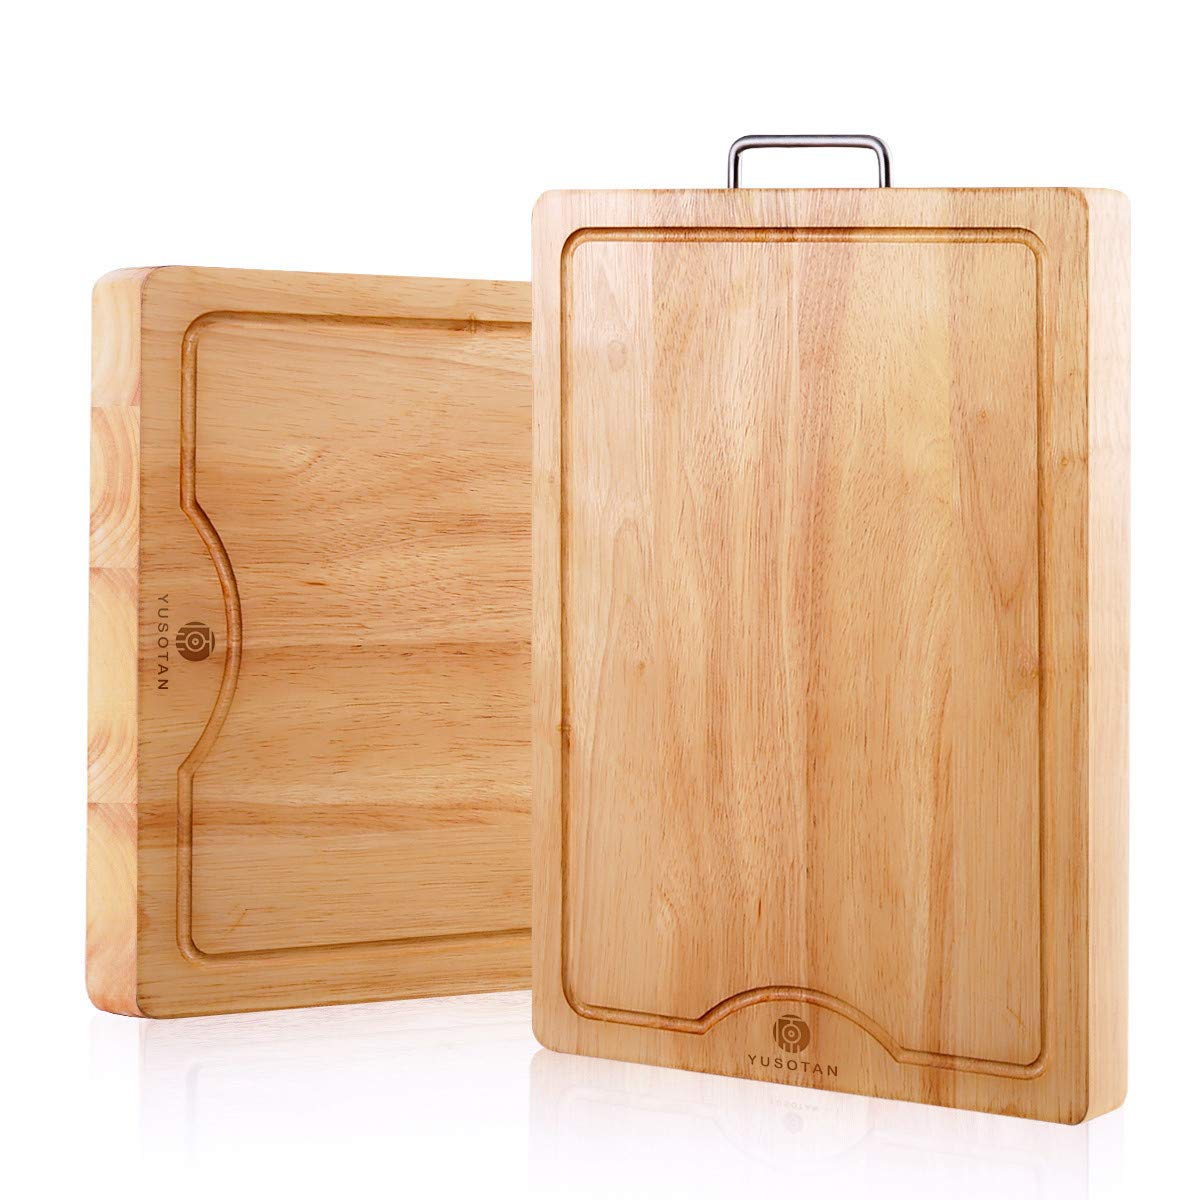 Wood Cutting board,Anti-Microbial,Quality Chopping Board(19.7x13.8inches)with Juice Groove and Stainless Steel Handle for Kitchen (Reversible design, Solid Wooden Design,Multipurpose uses)YUSOTAN. by YUSOTAN